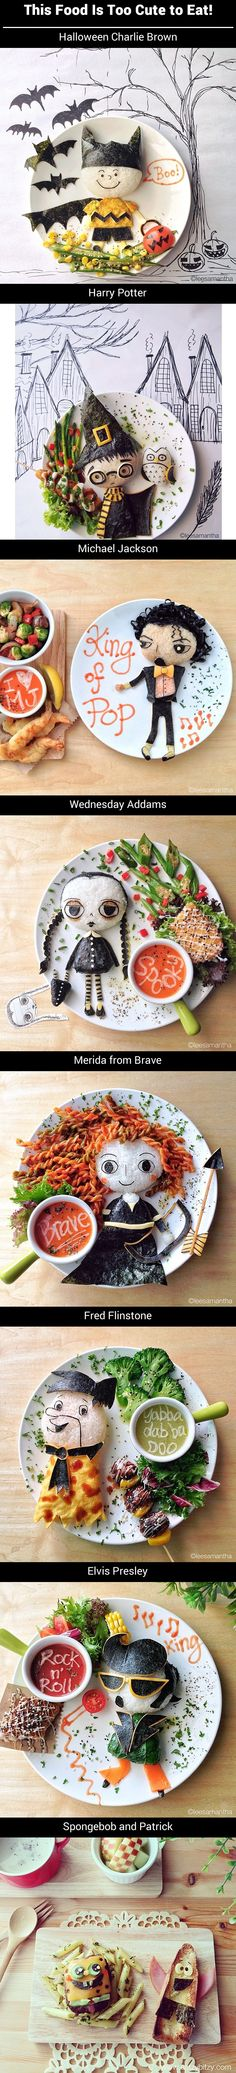 This Food Is Too Cute to Eat!